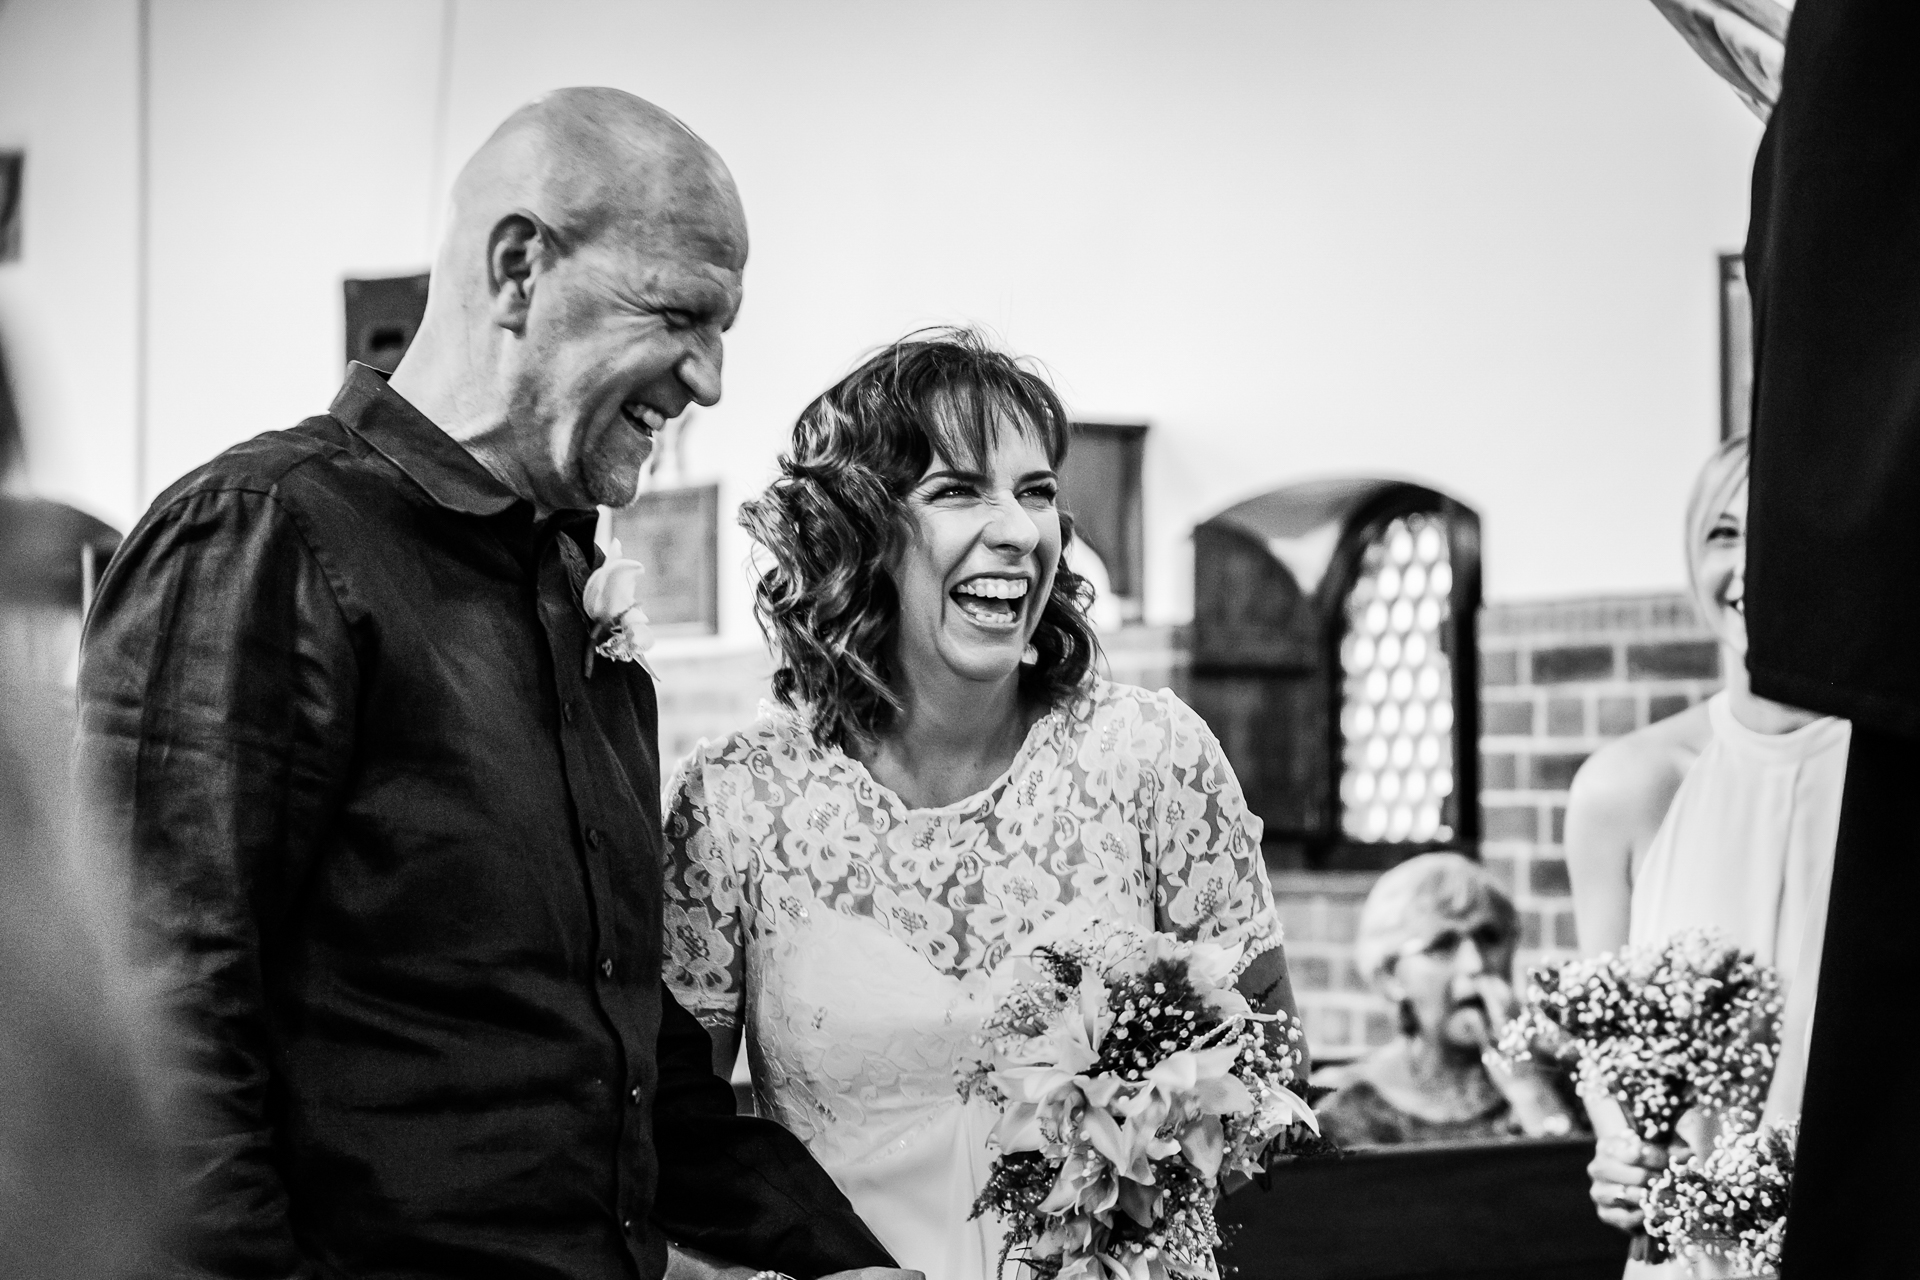 Garden Route Elopement Ceremony Picture | The happy couple shares a joke